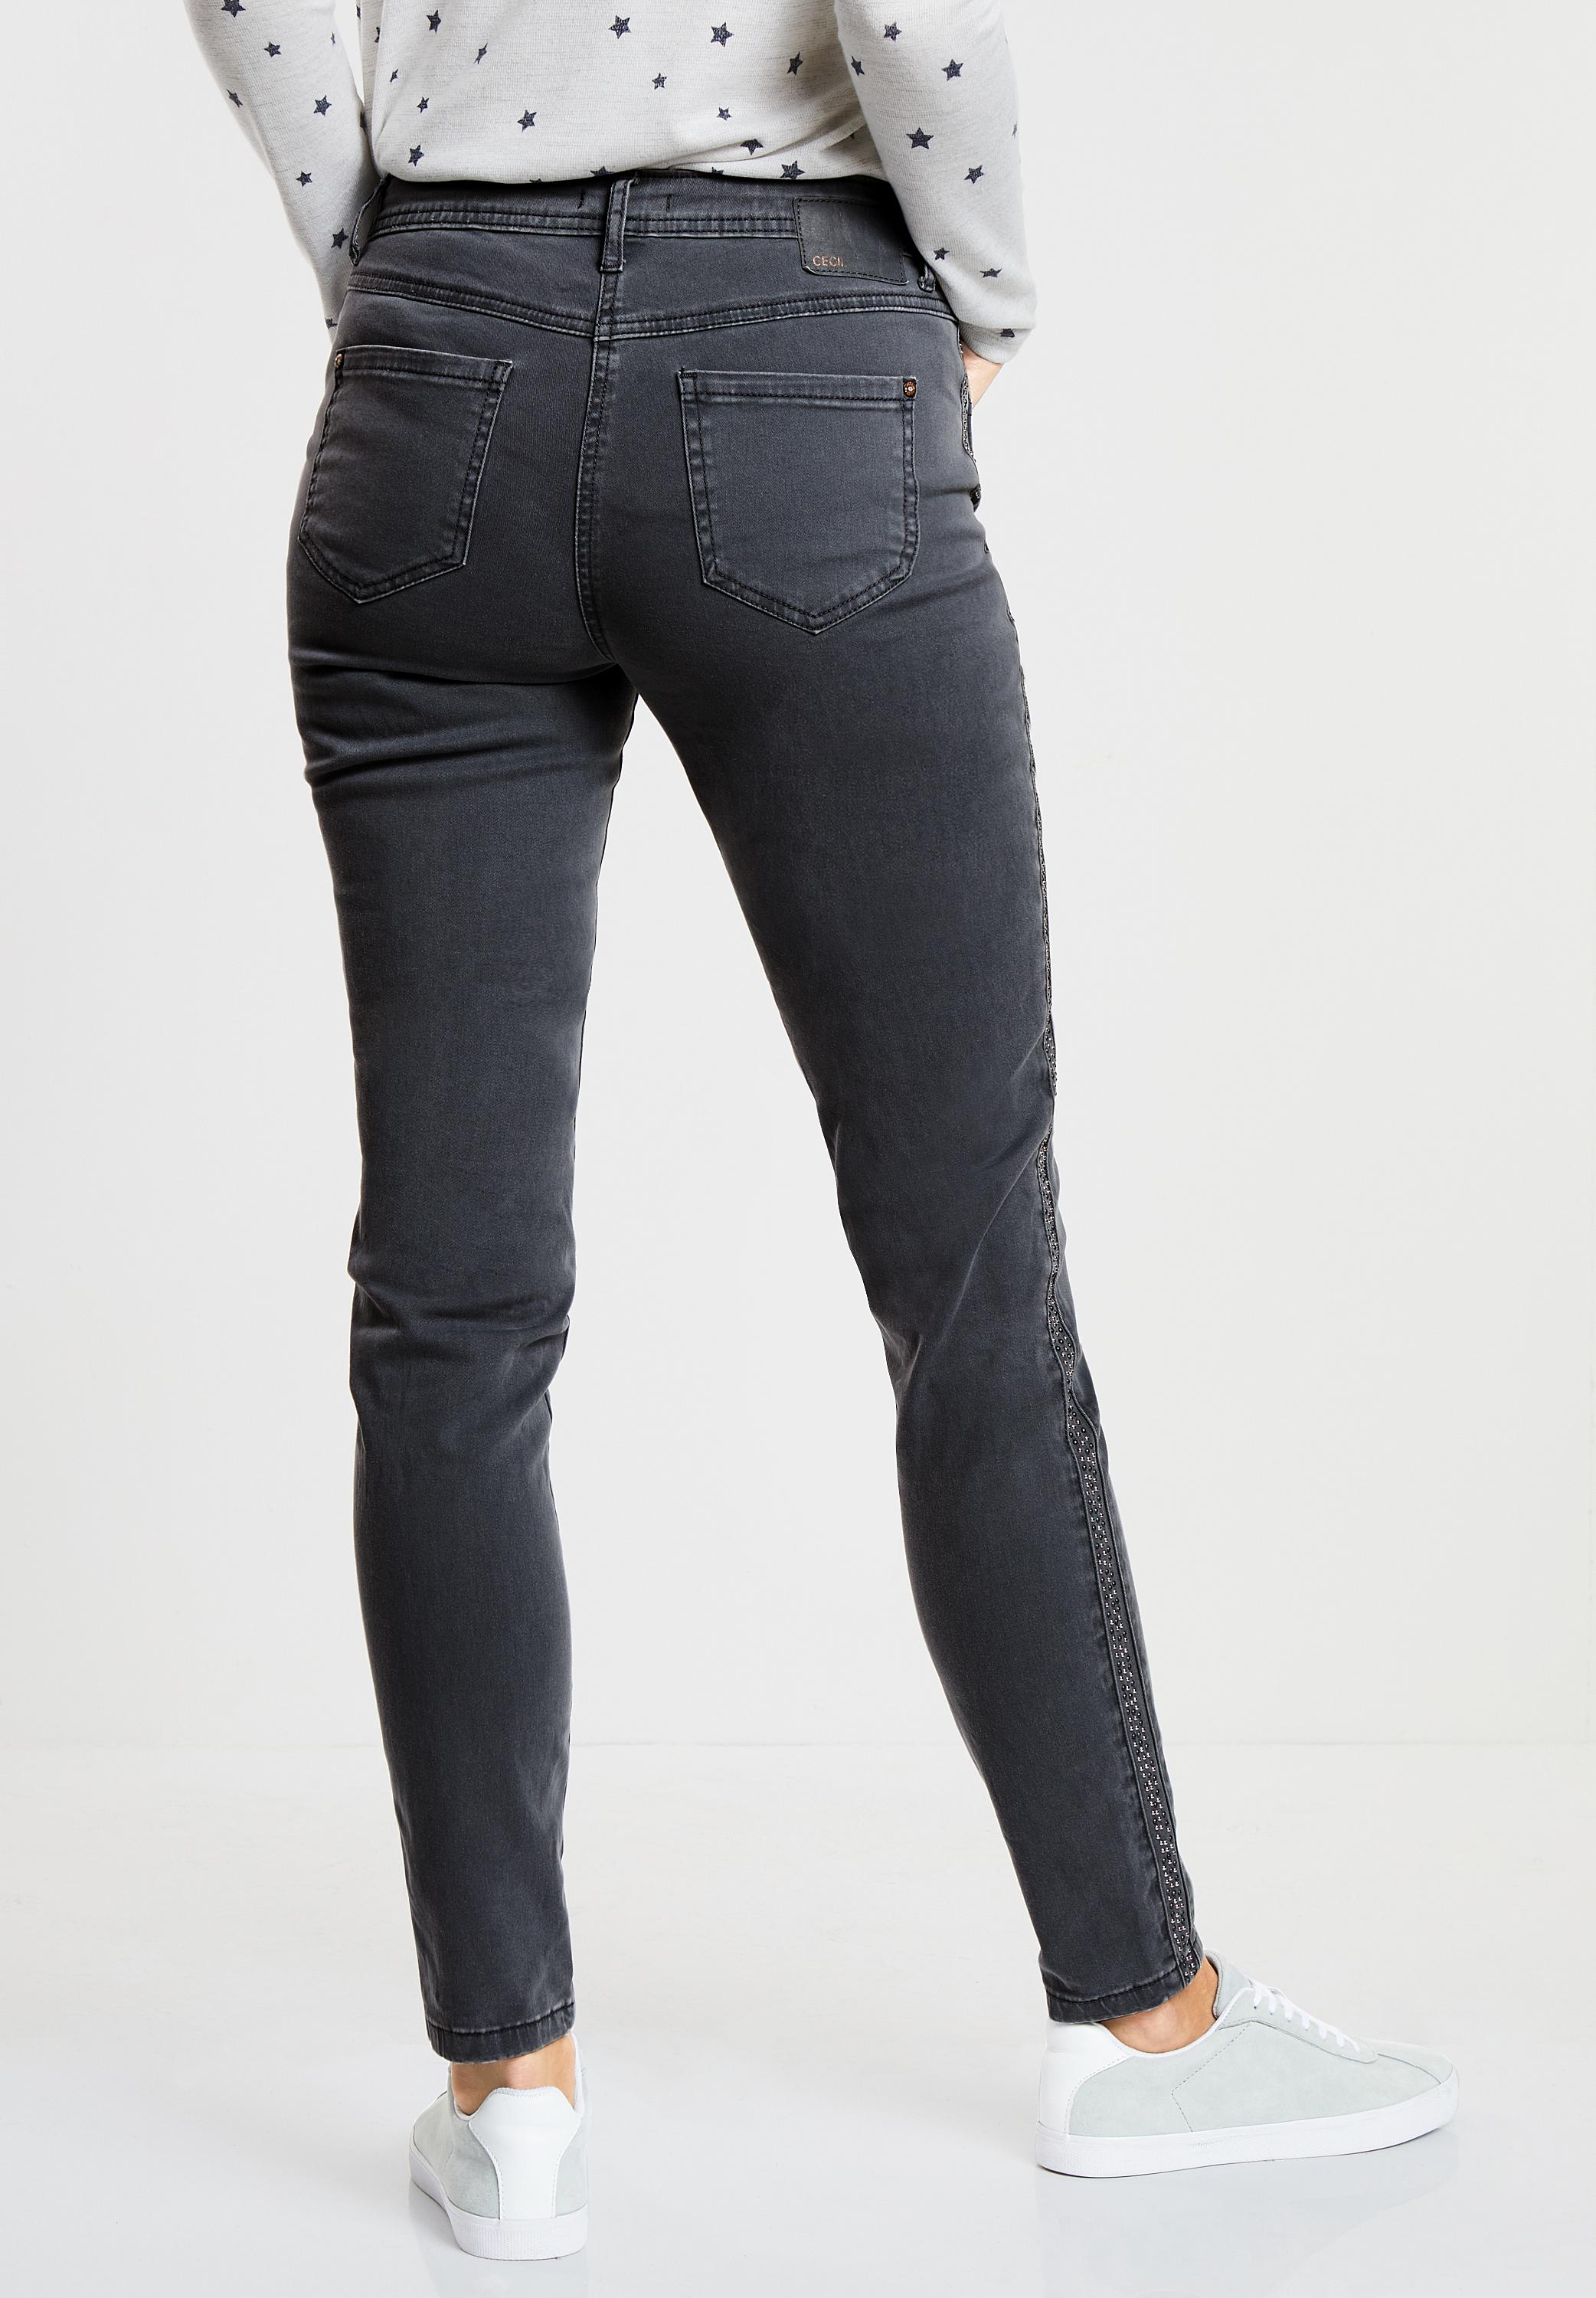 CECIL Verzierte Denim Victoria in Dark Graphite Grey